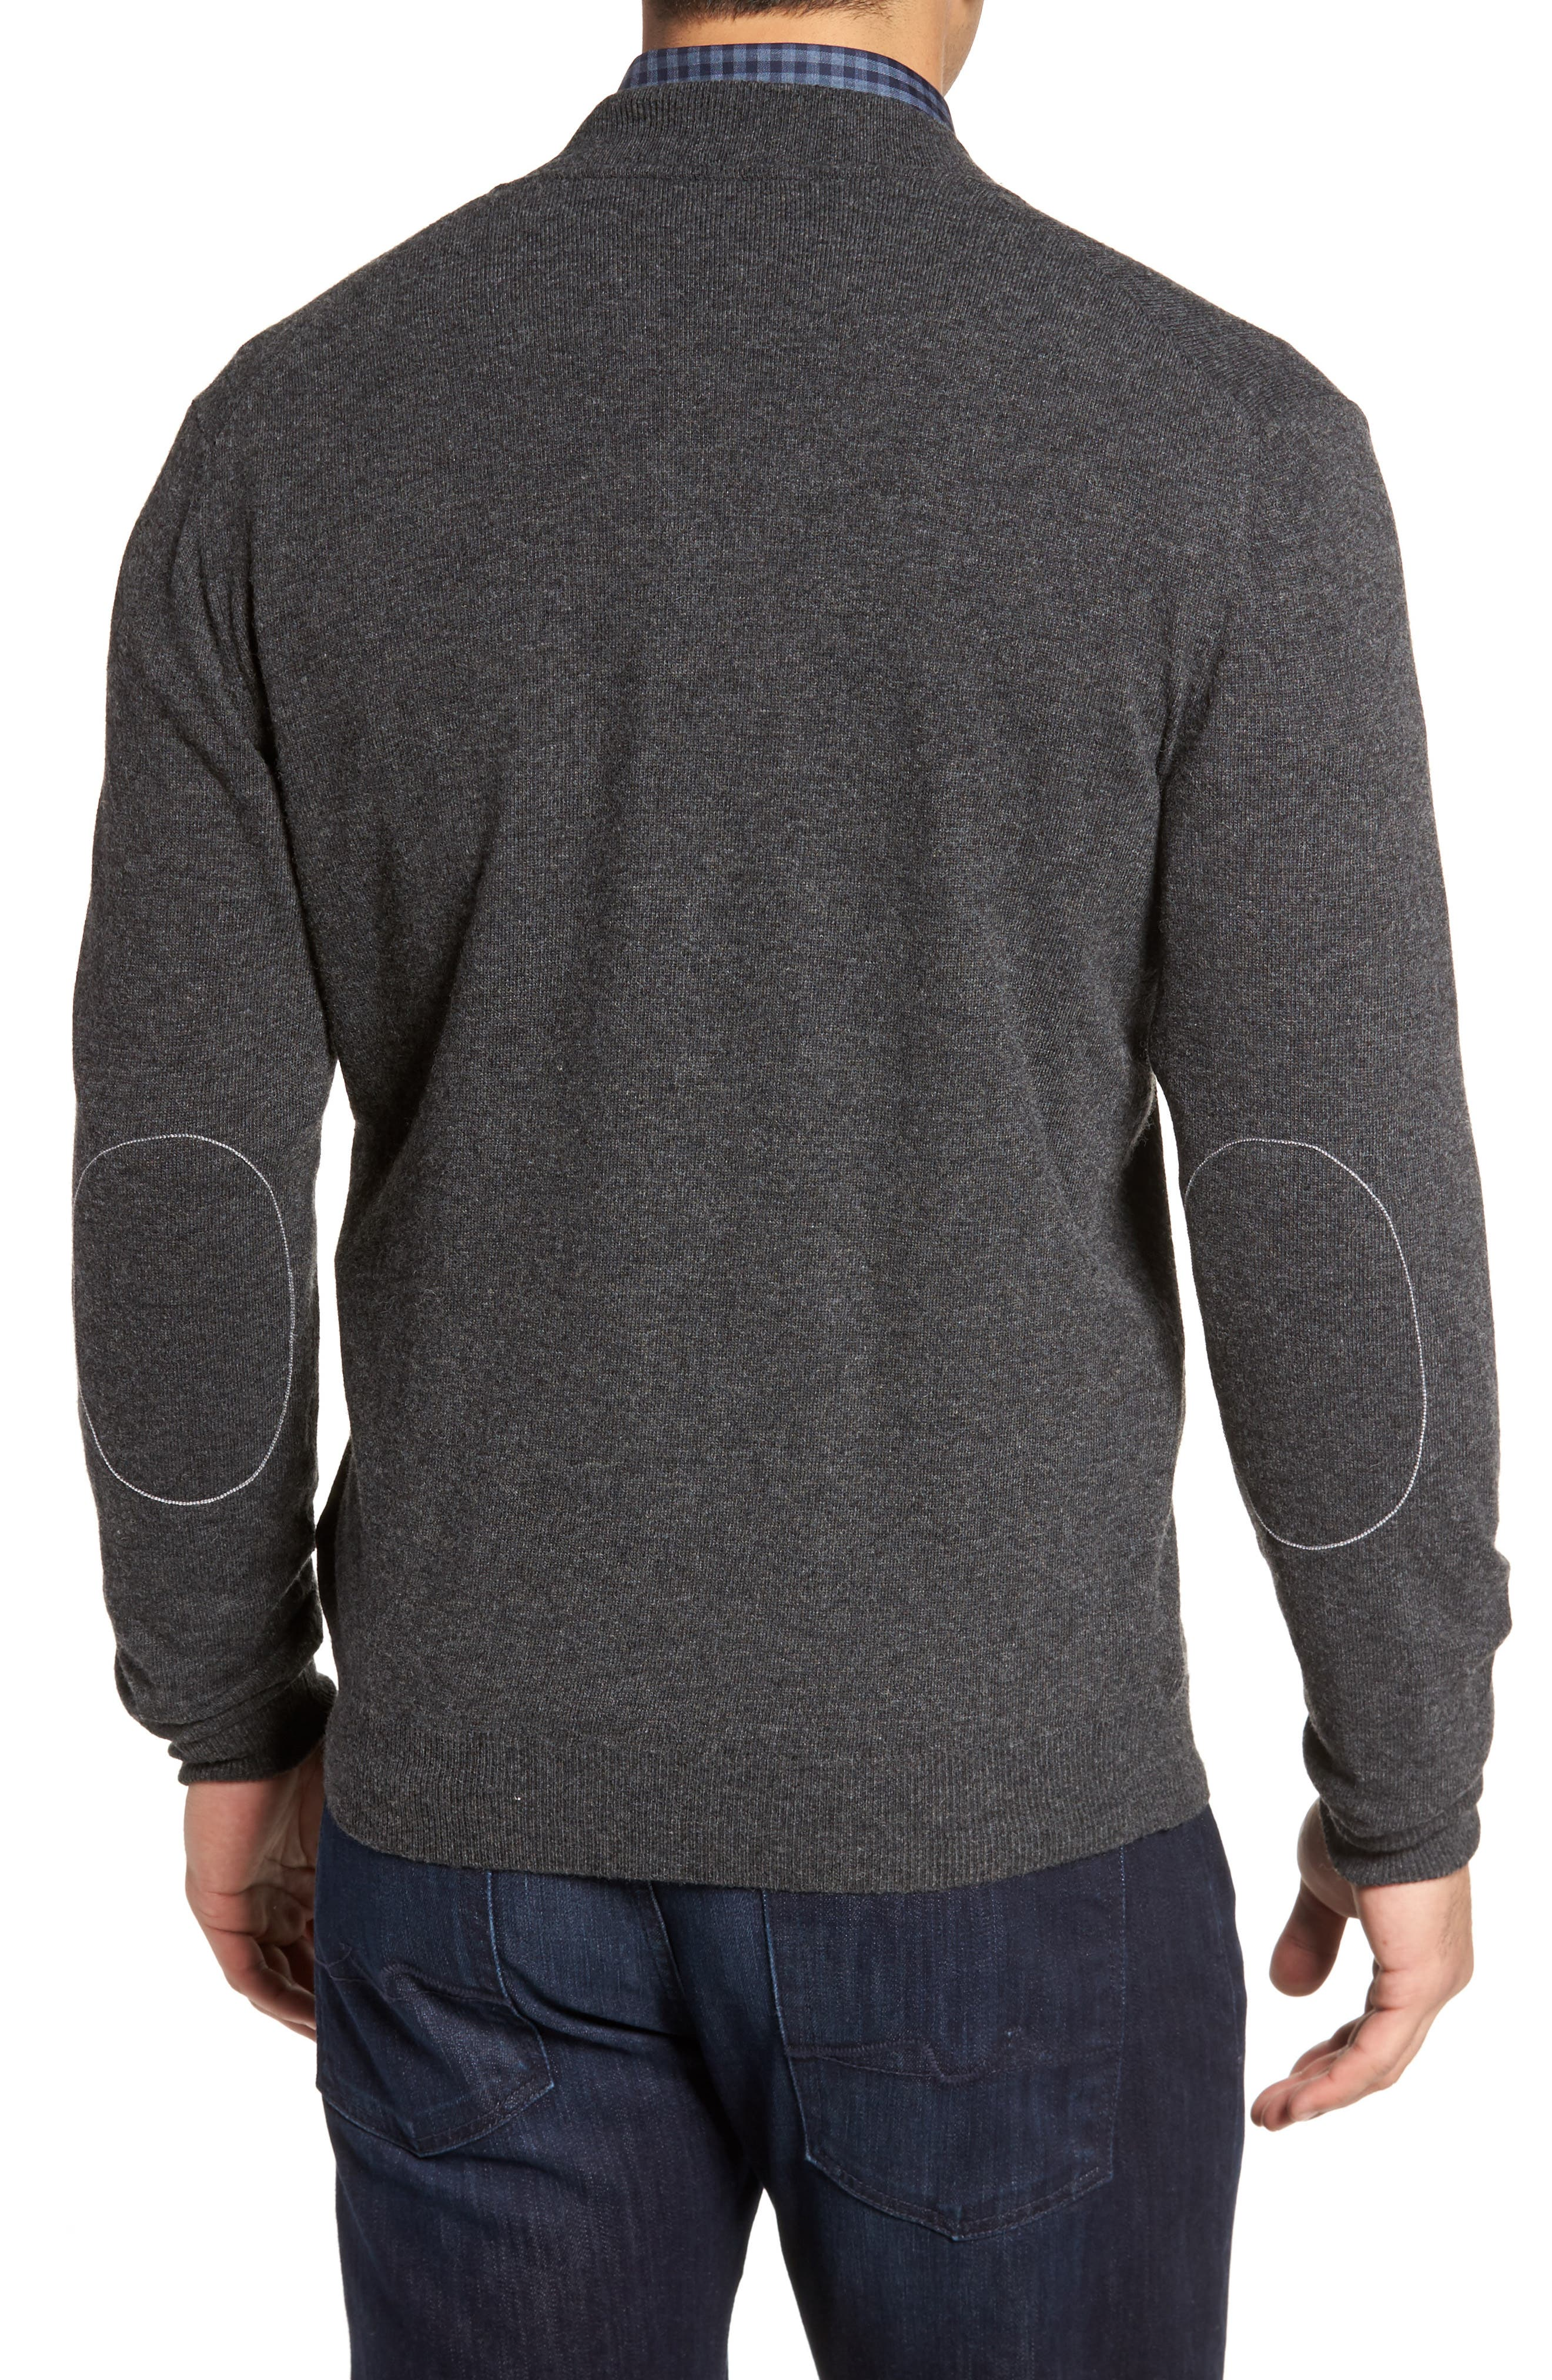 Zip Sweater,                             Alternate thumbnail 2, color,                             Graphite